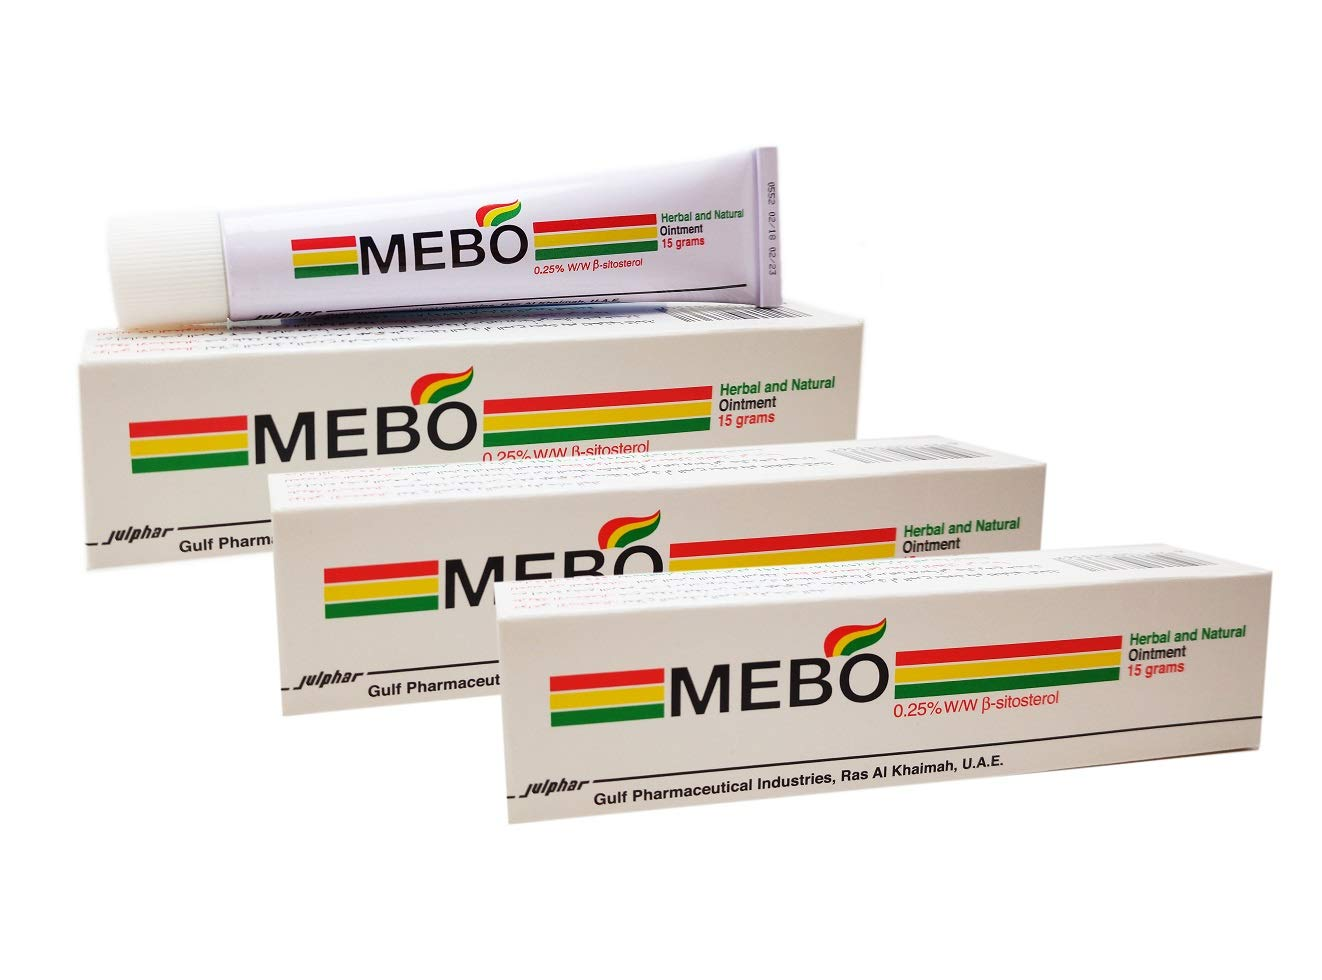 MEBO Burn Fast Relief Pain Cream Skin Healing Ointment Wound & Scar No Marks Care Fast First Aid Health Beauty Care (3 Tubes = 45 grams)